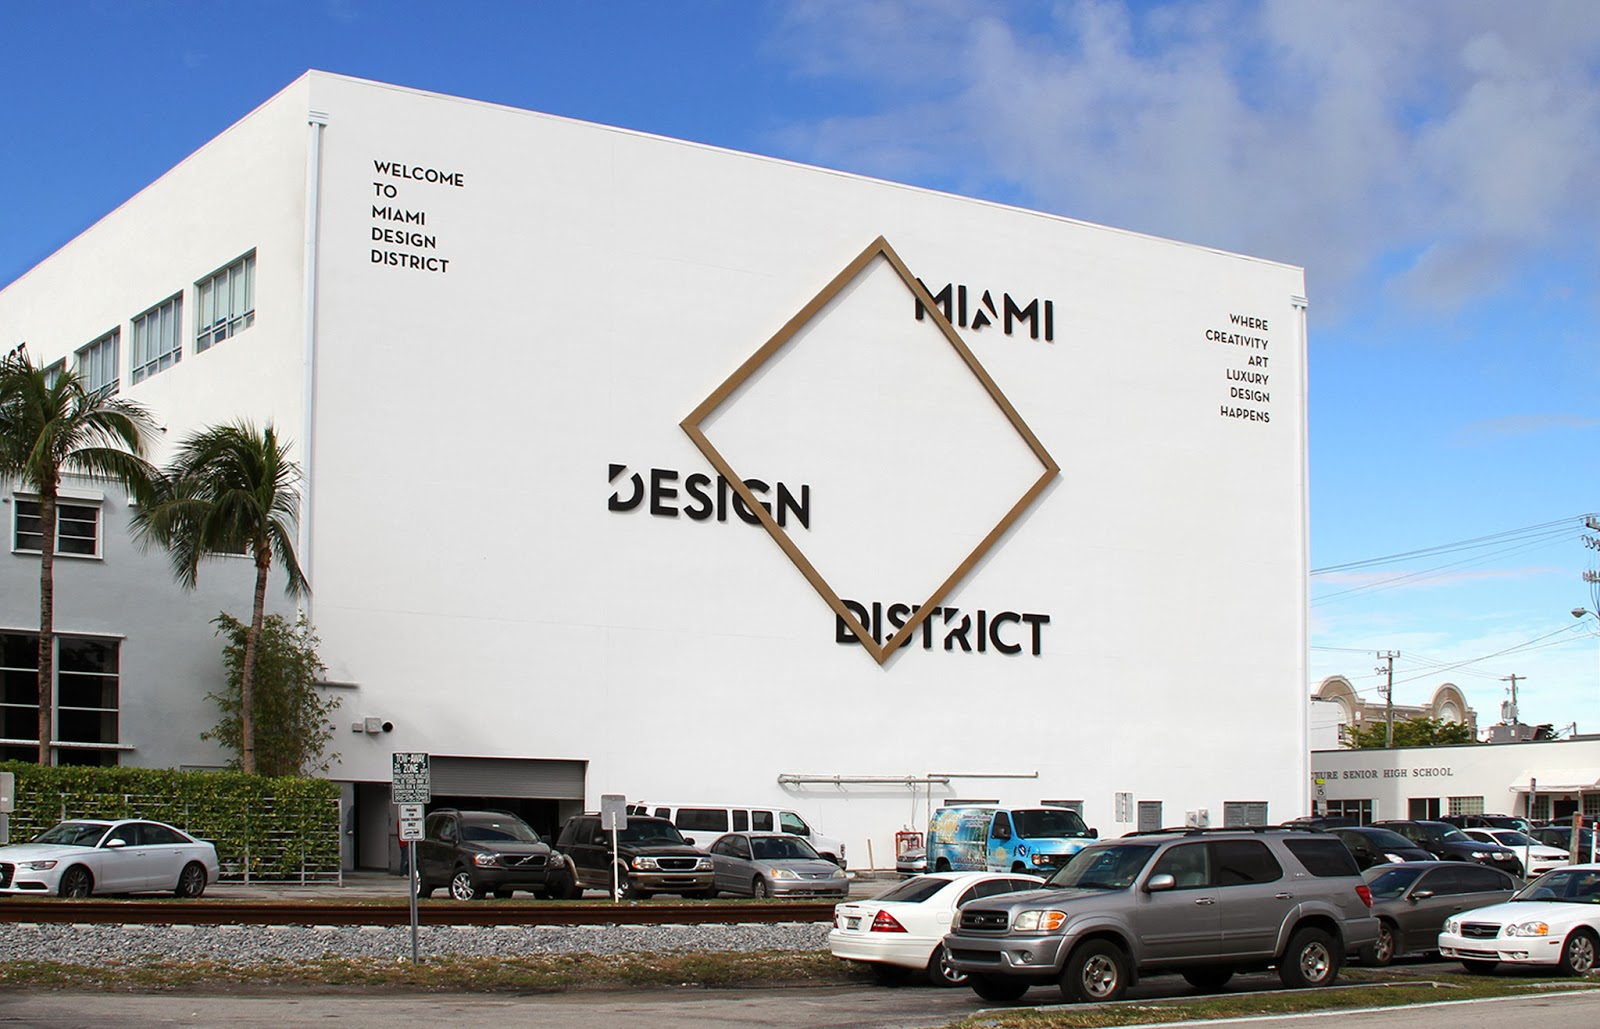 Miami art scene the miami design district for Design district